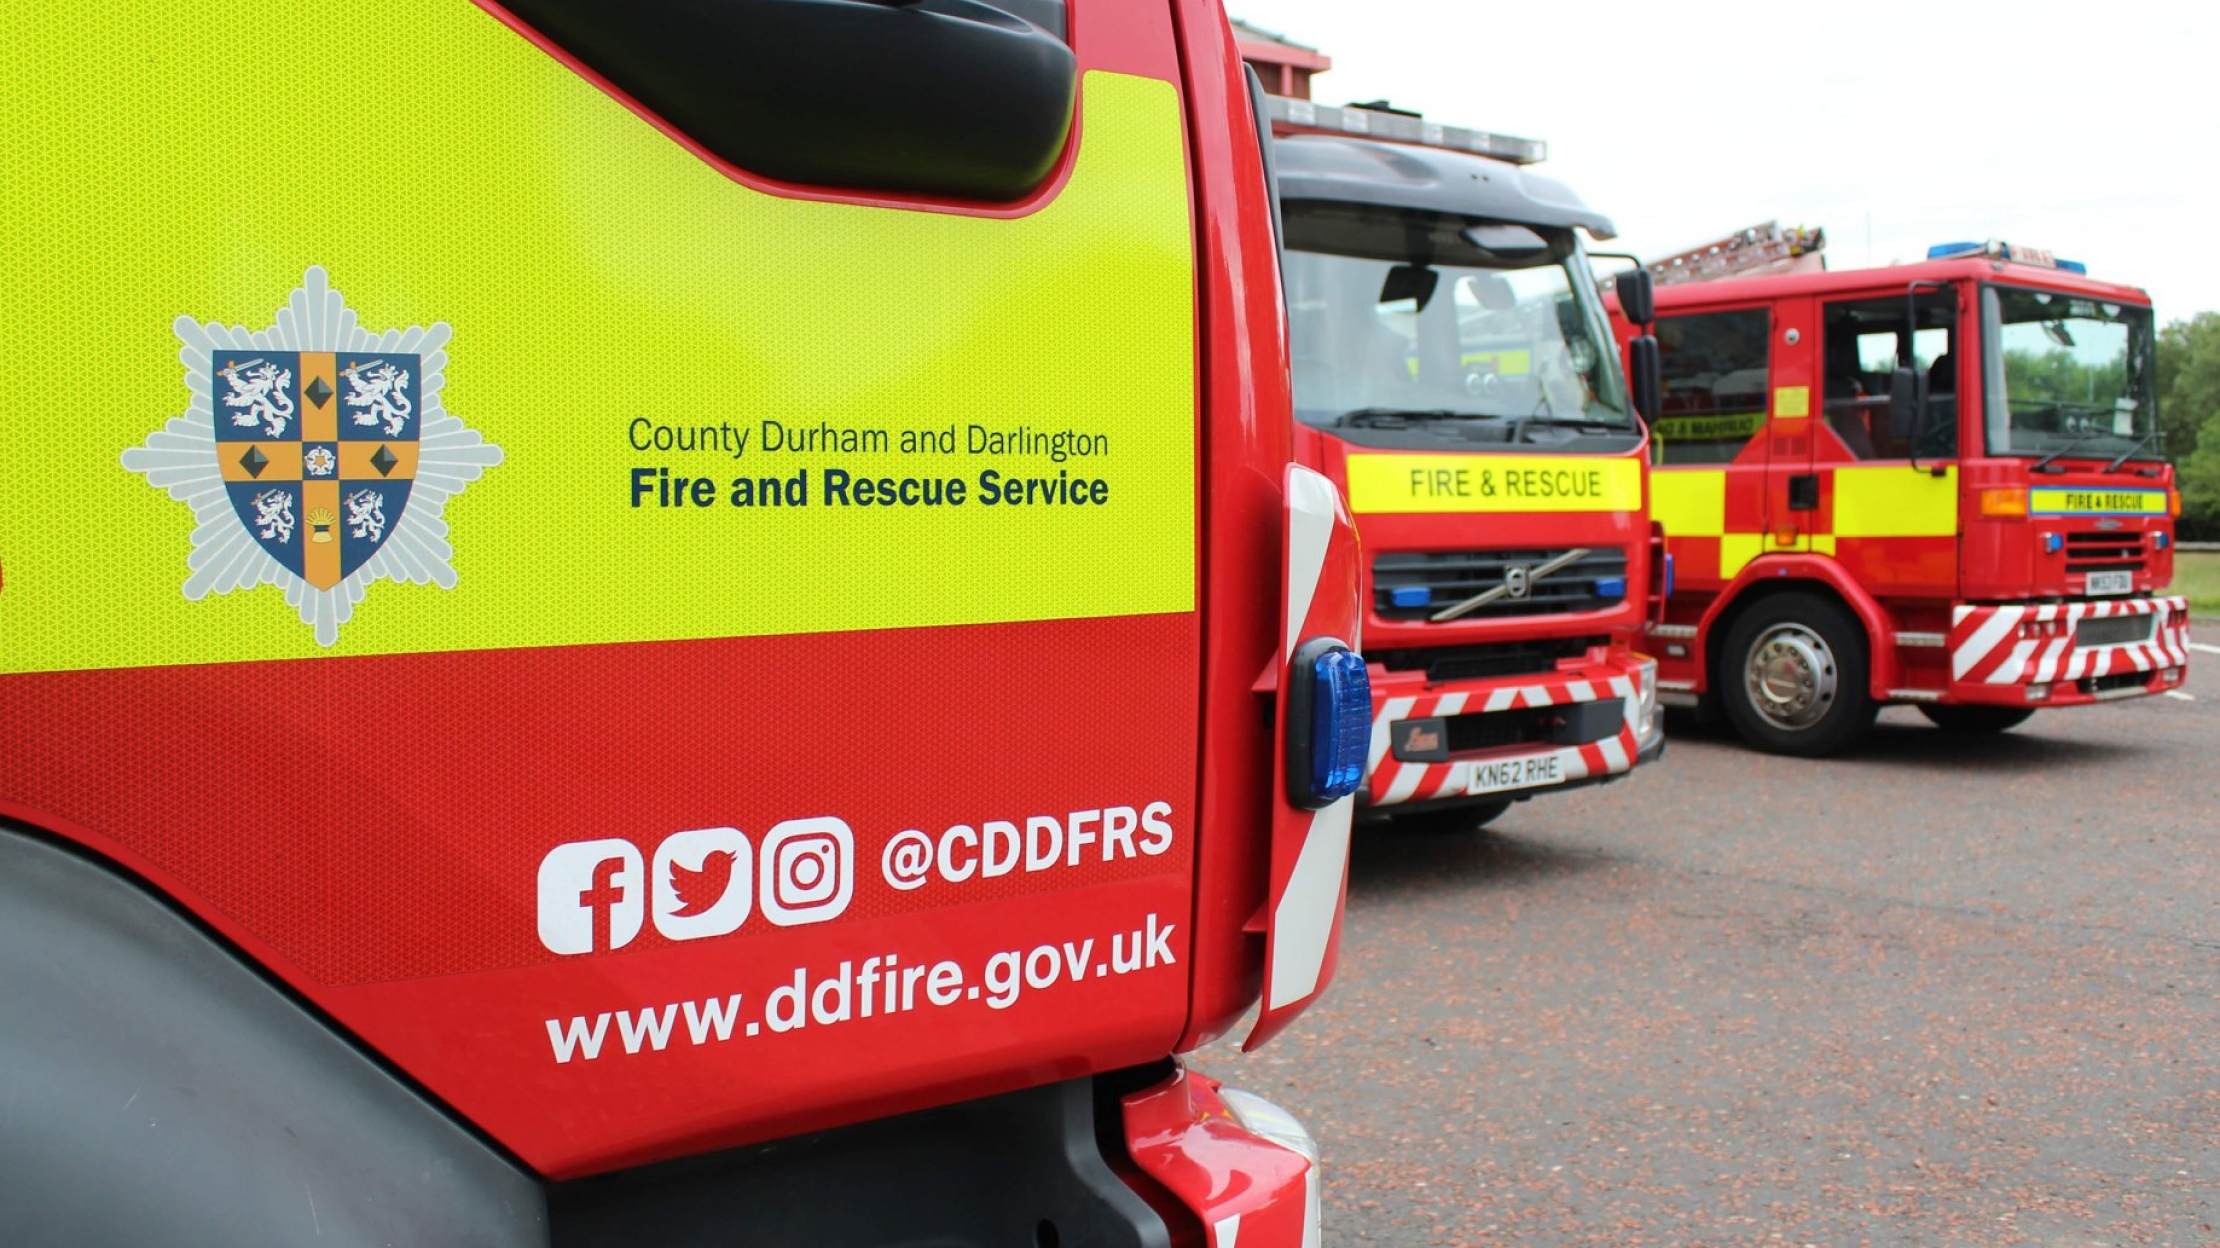 side of a fire appliance with website address and logo